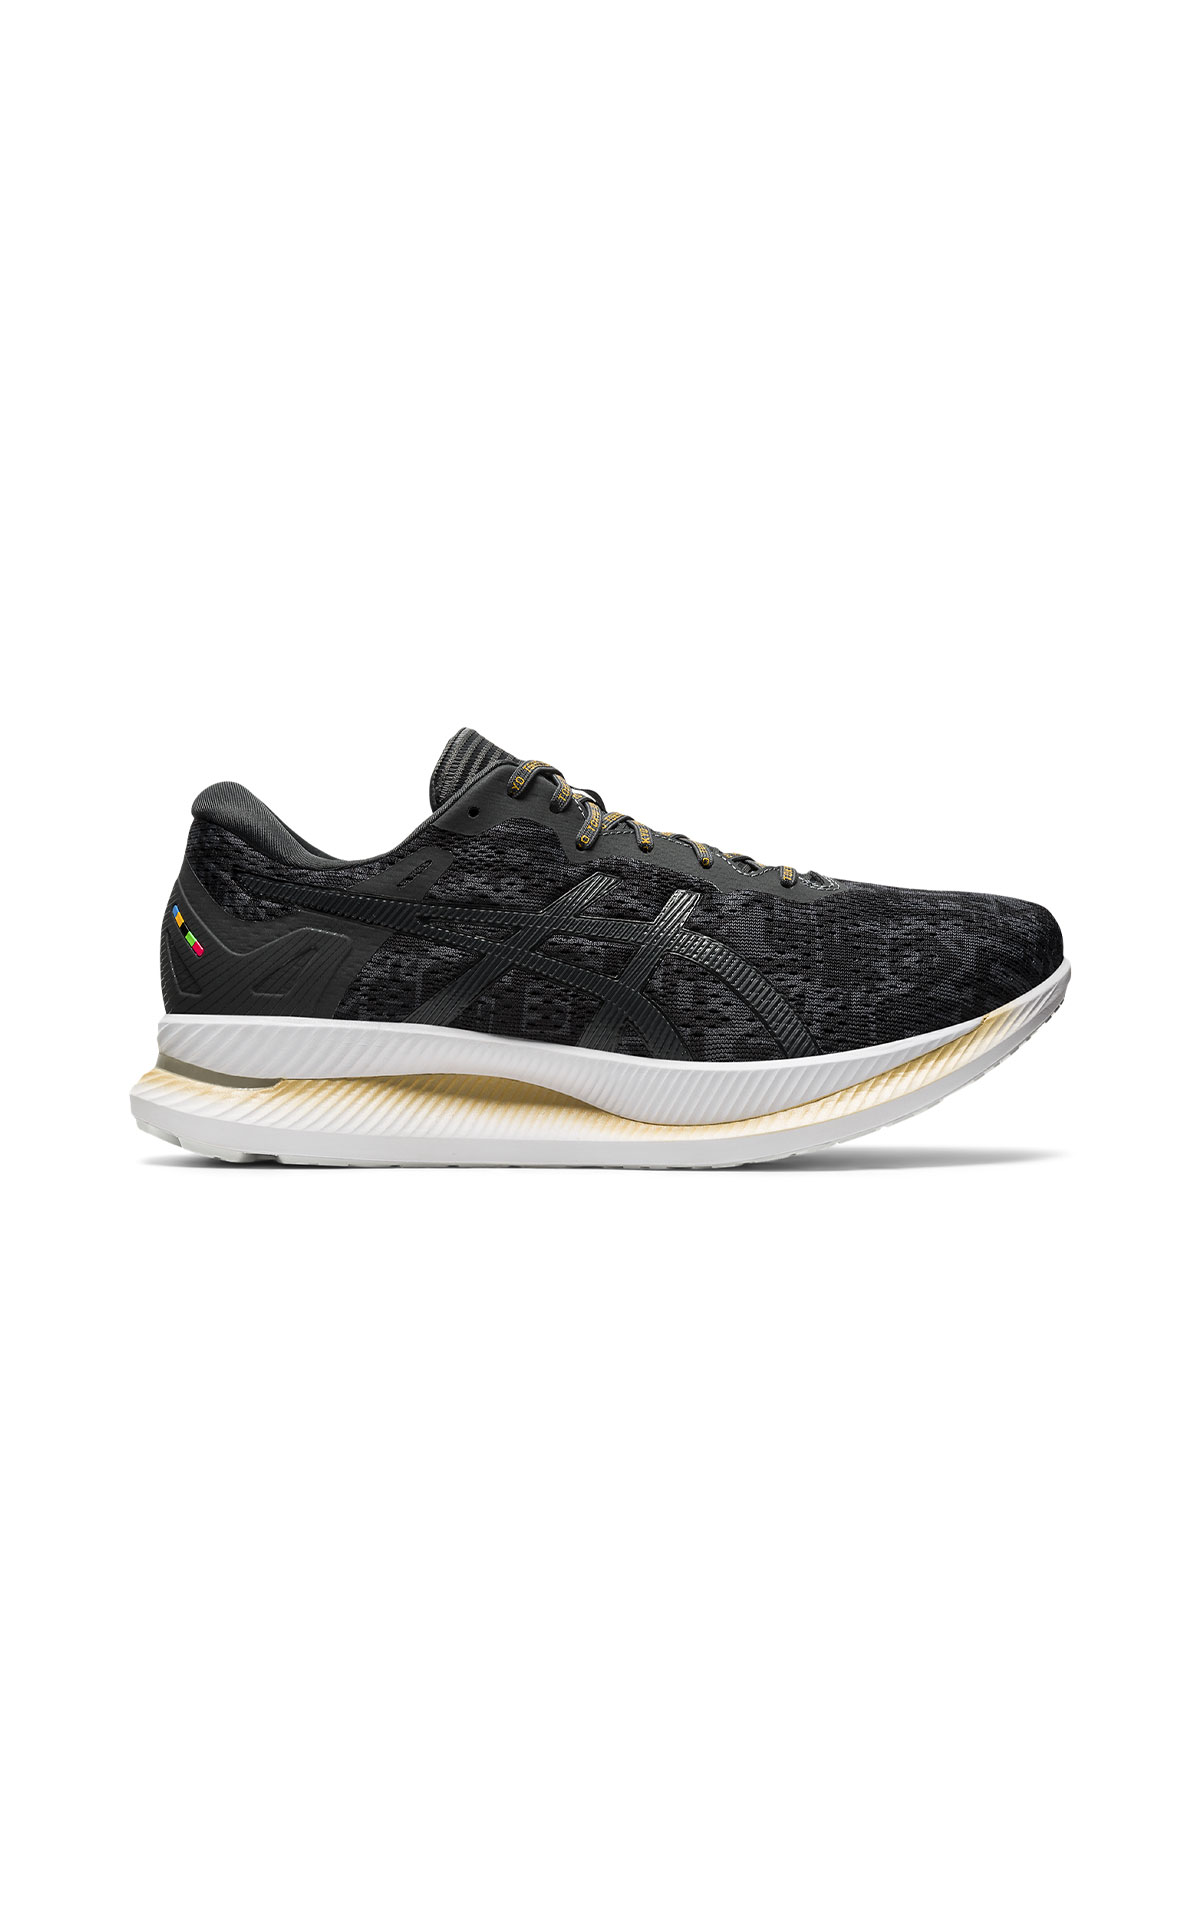 ASICS Men's black Glideride trainer from Bicester Village